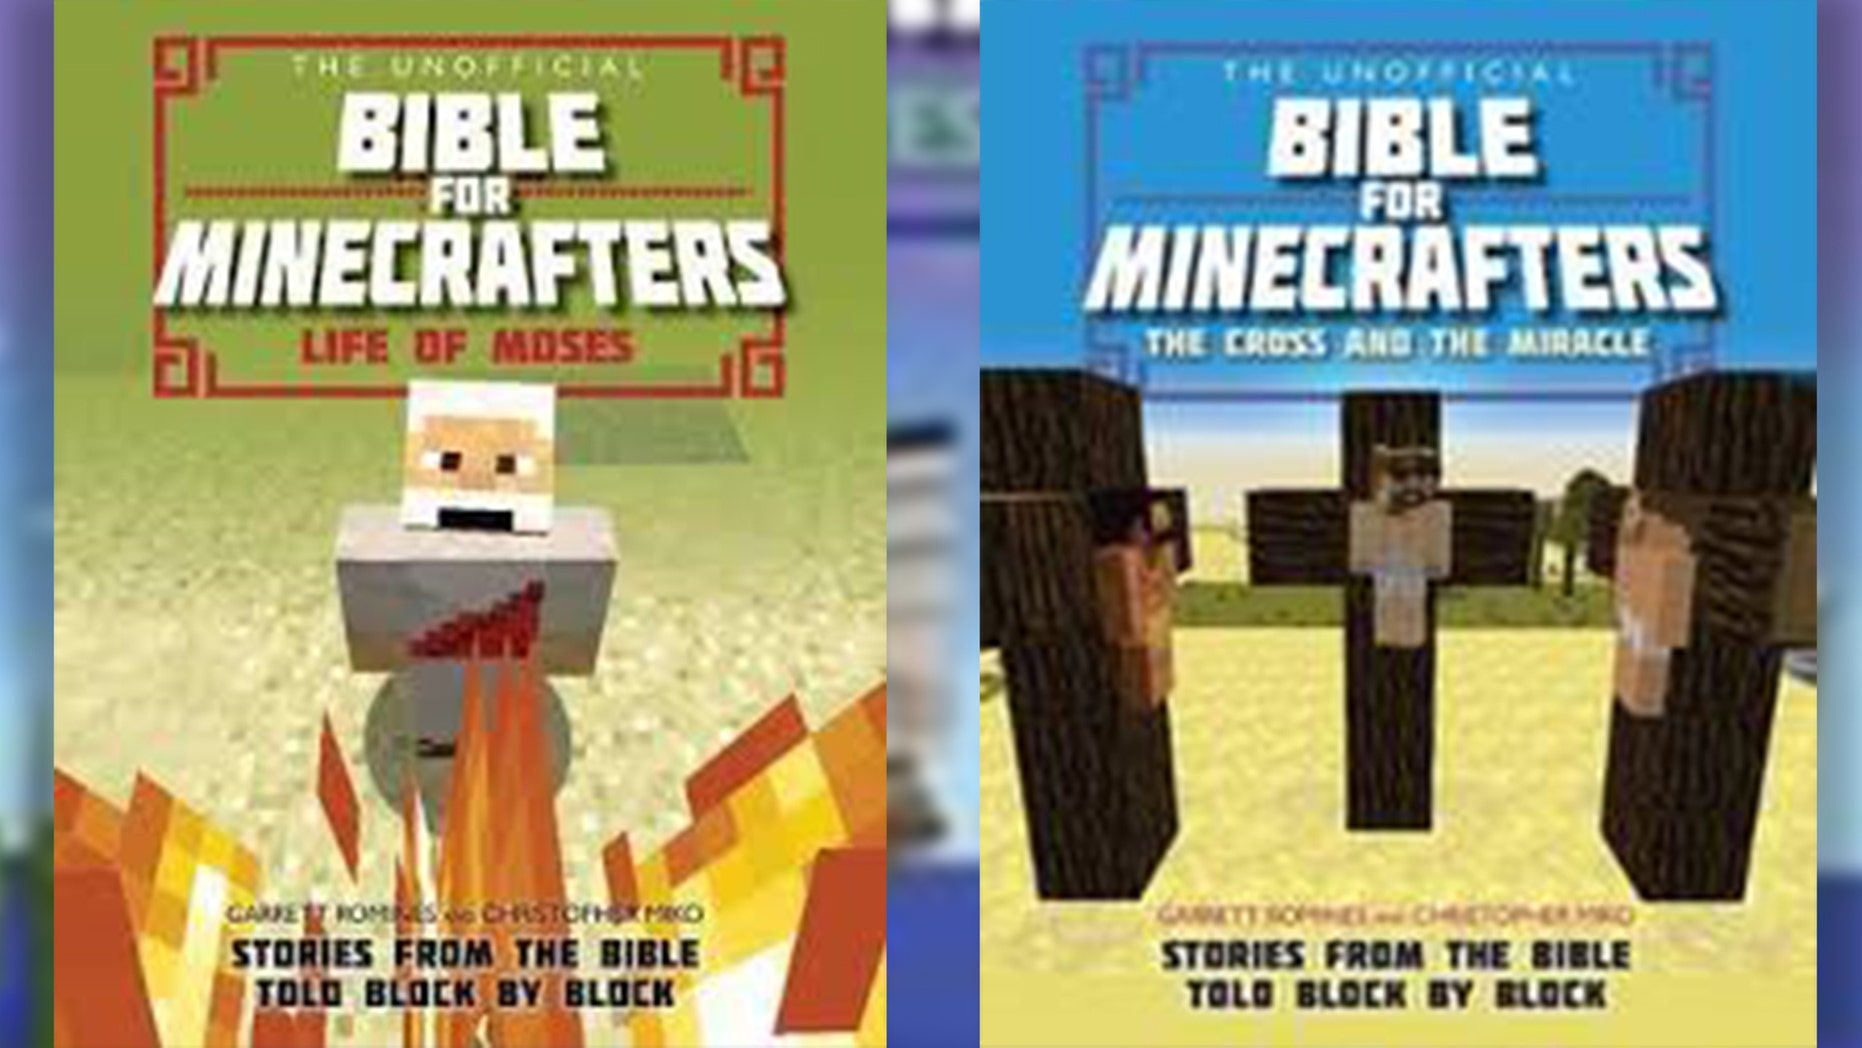 The popular video game Minecraft is being used to teach Bible stories to students.